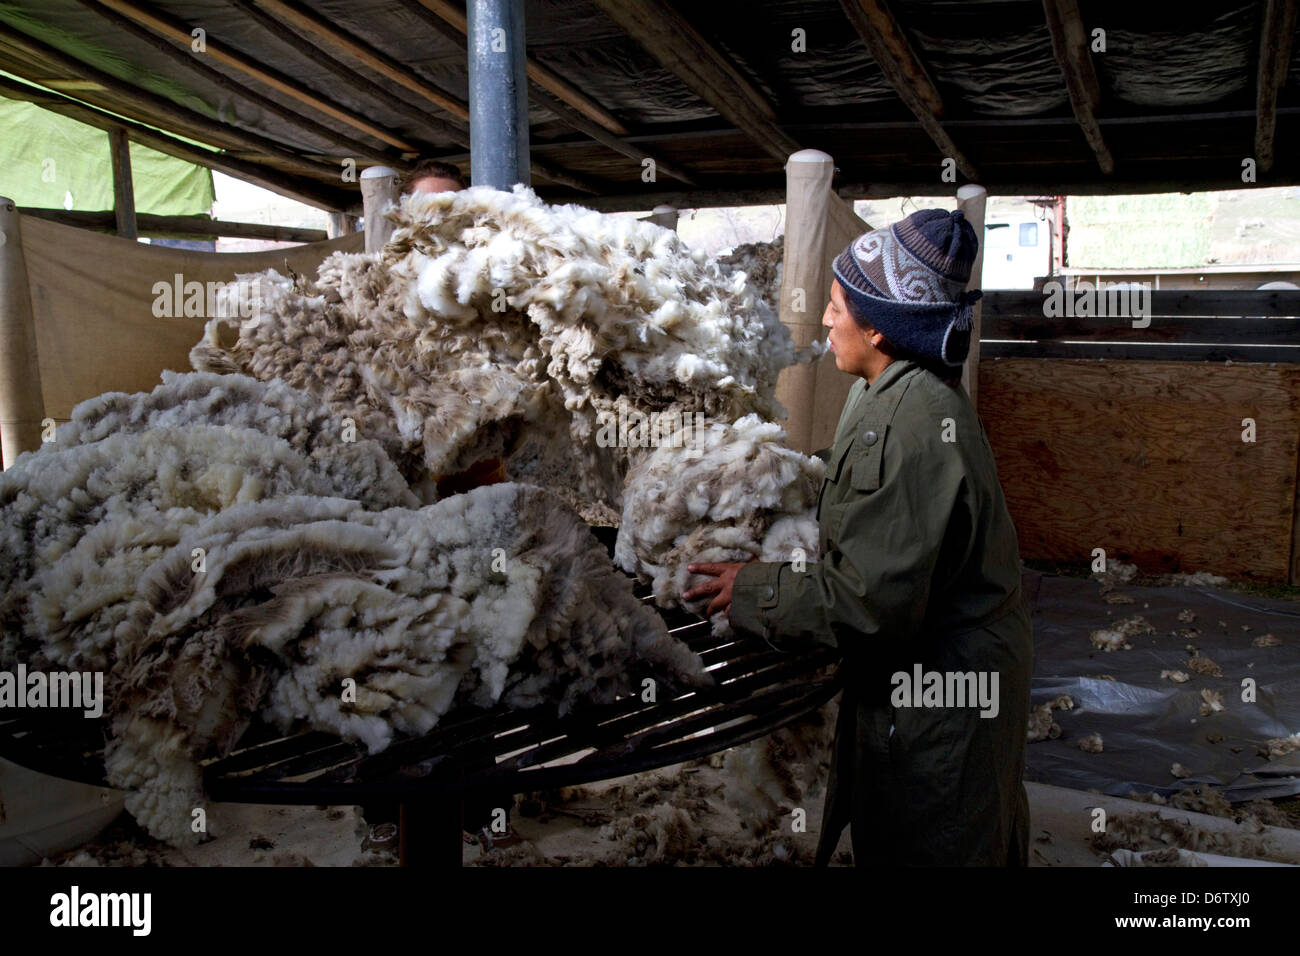 Shearing Sheep, Usa Stock Photos & Shearing Sheep, Usa Stock